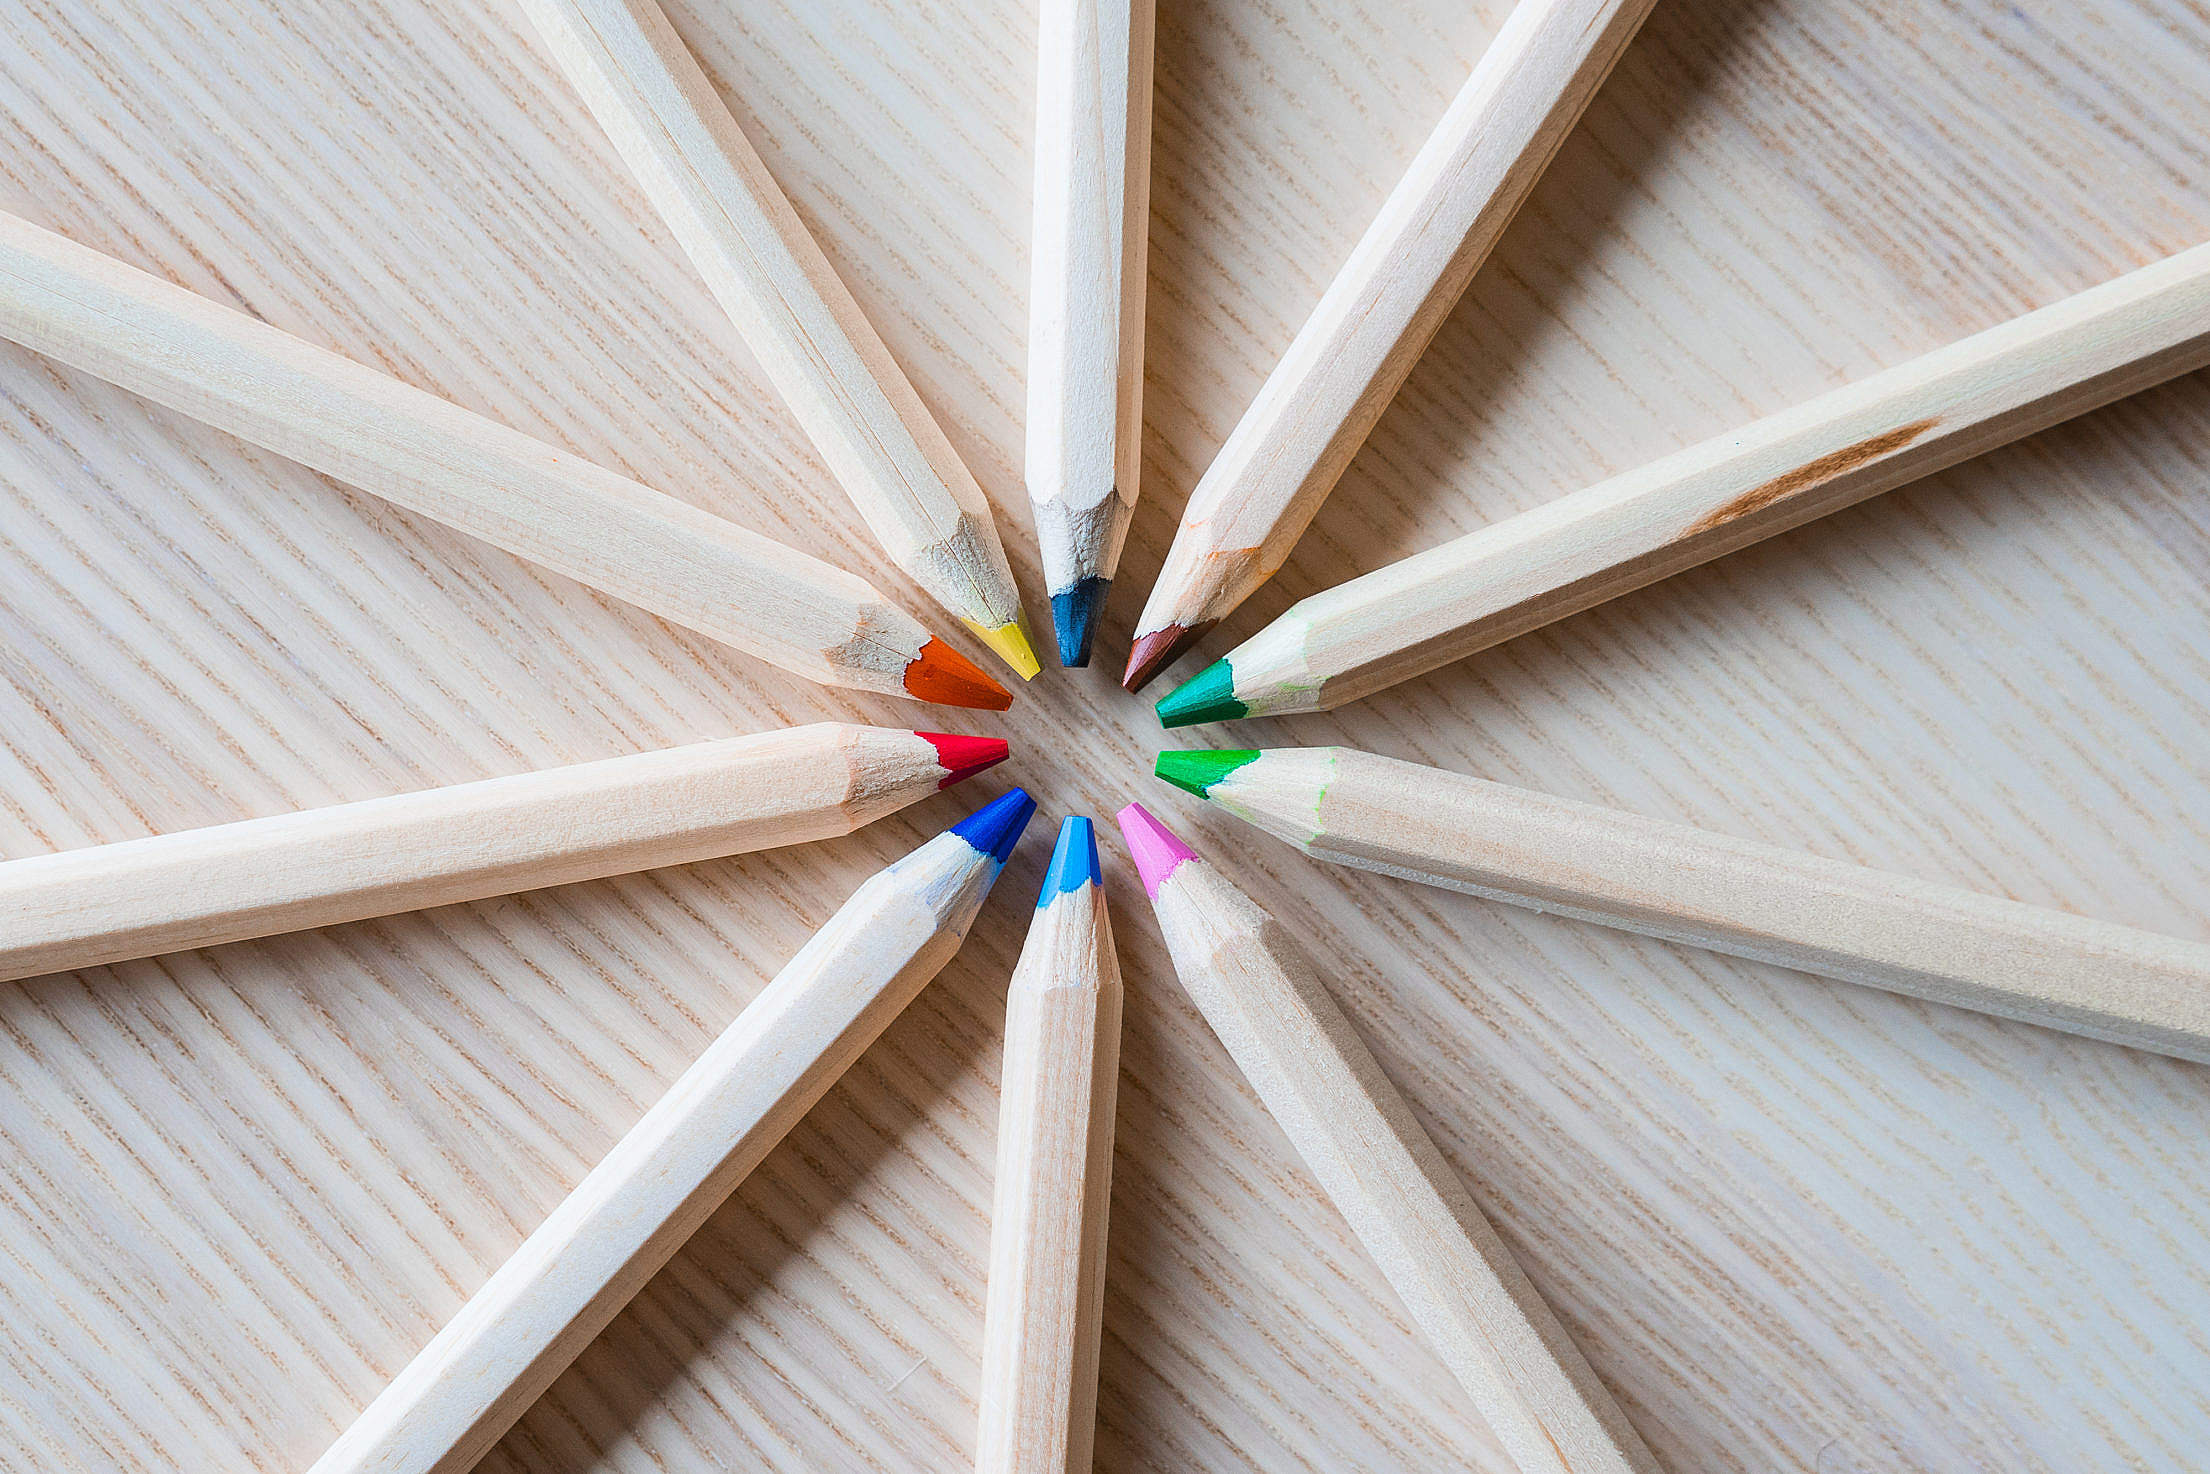 Colored Pencils For Kids Free Stock Photo